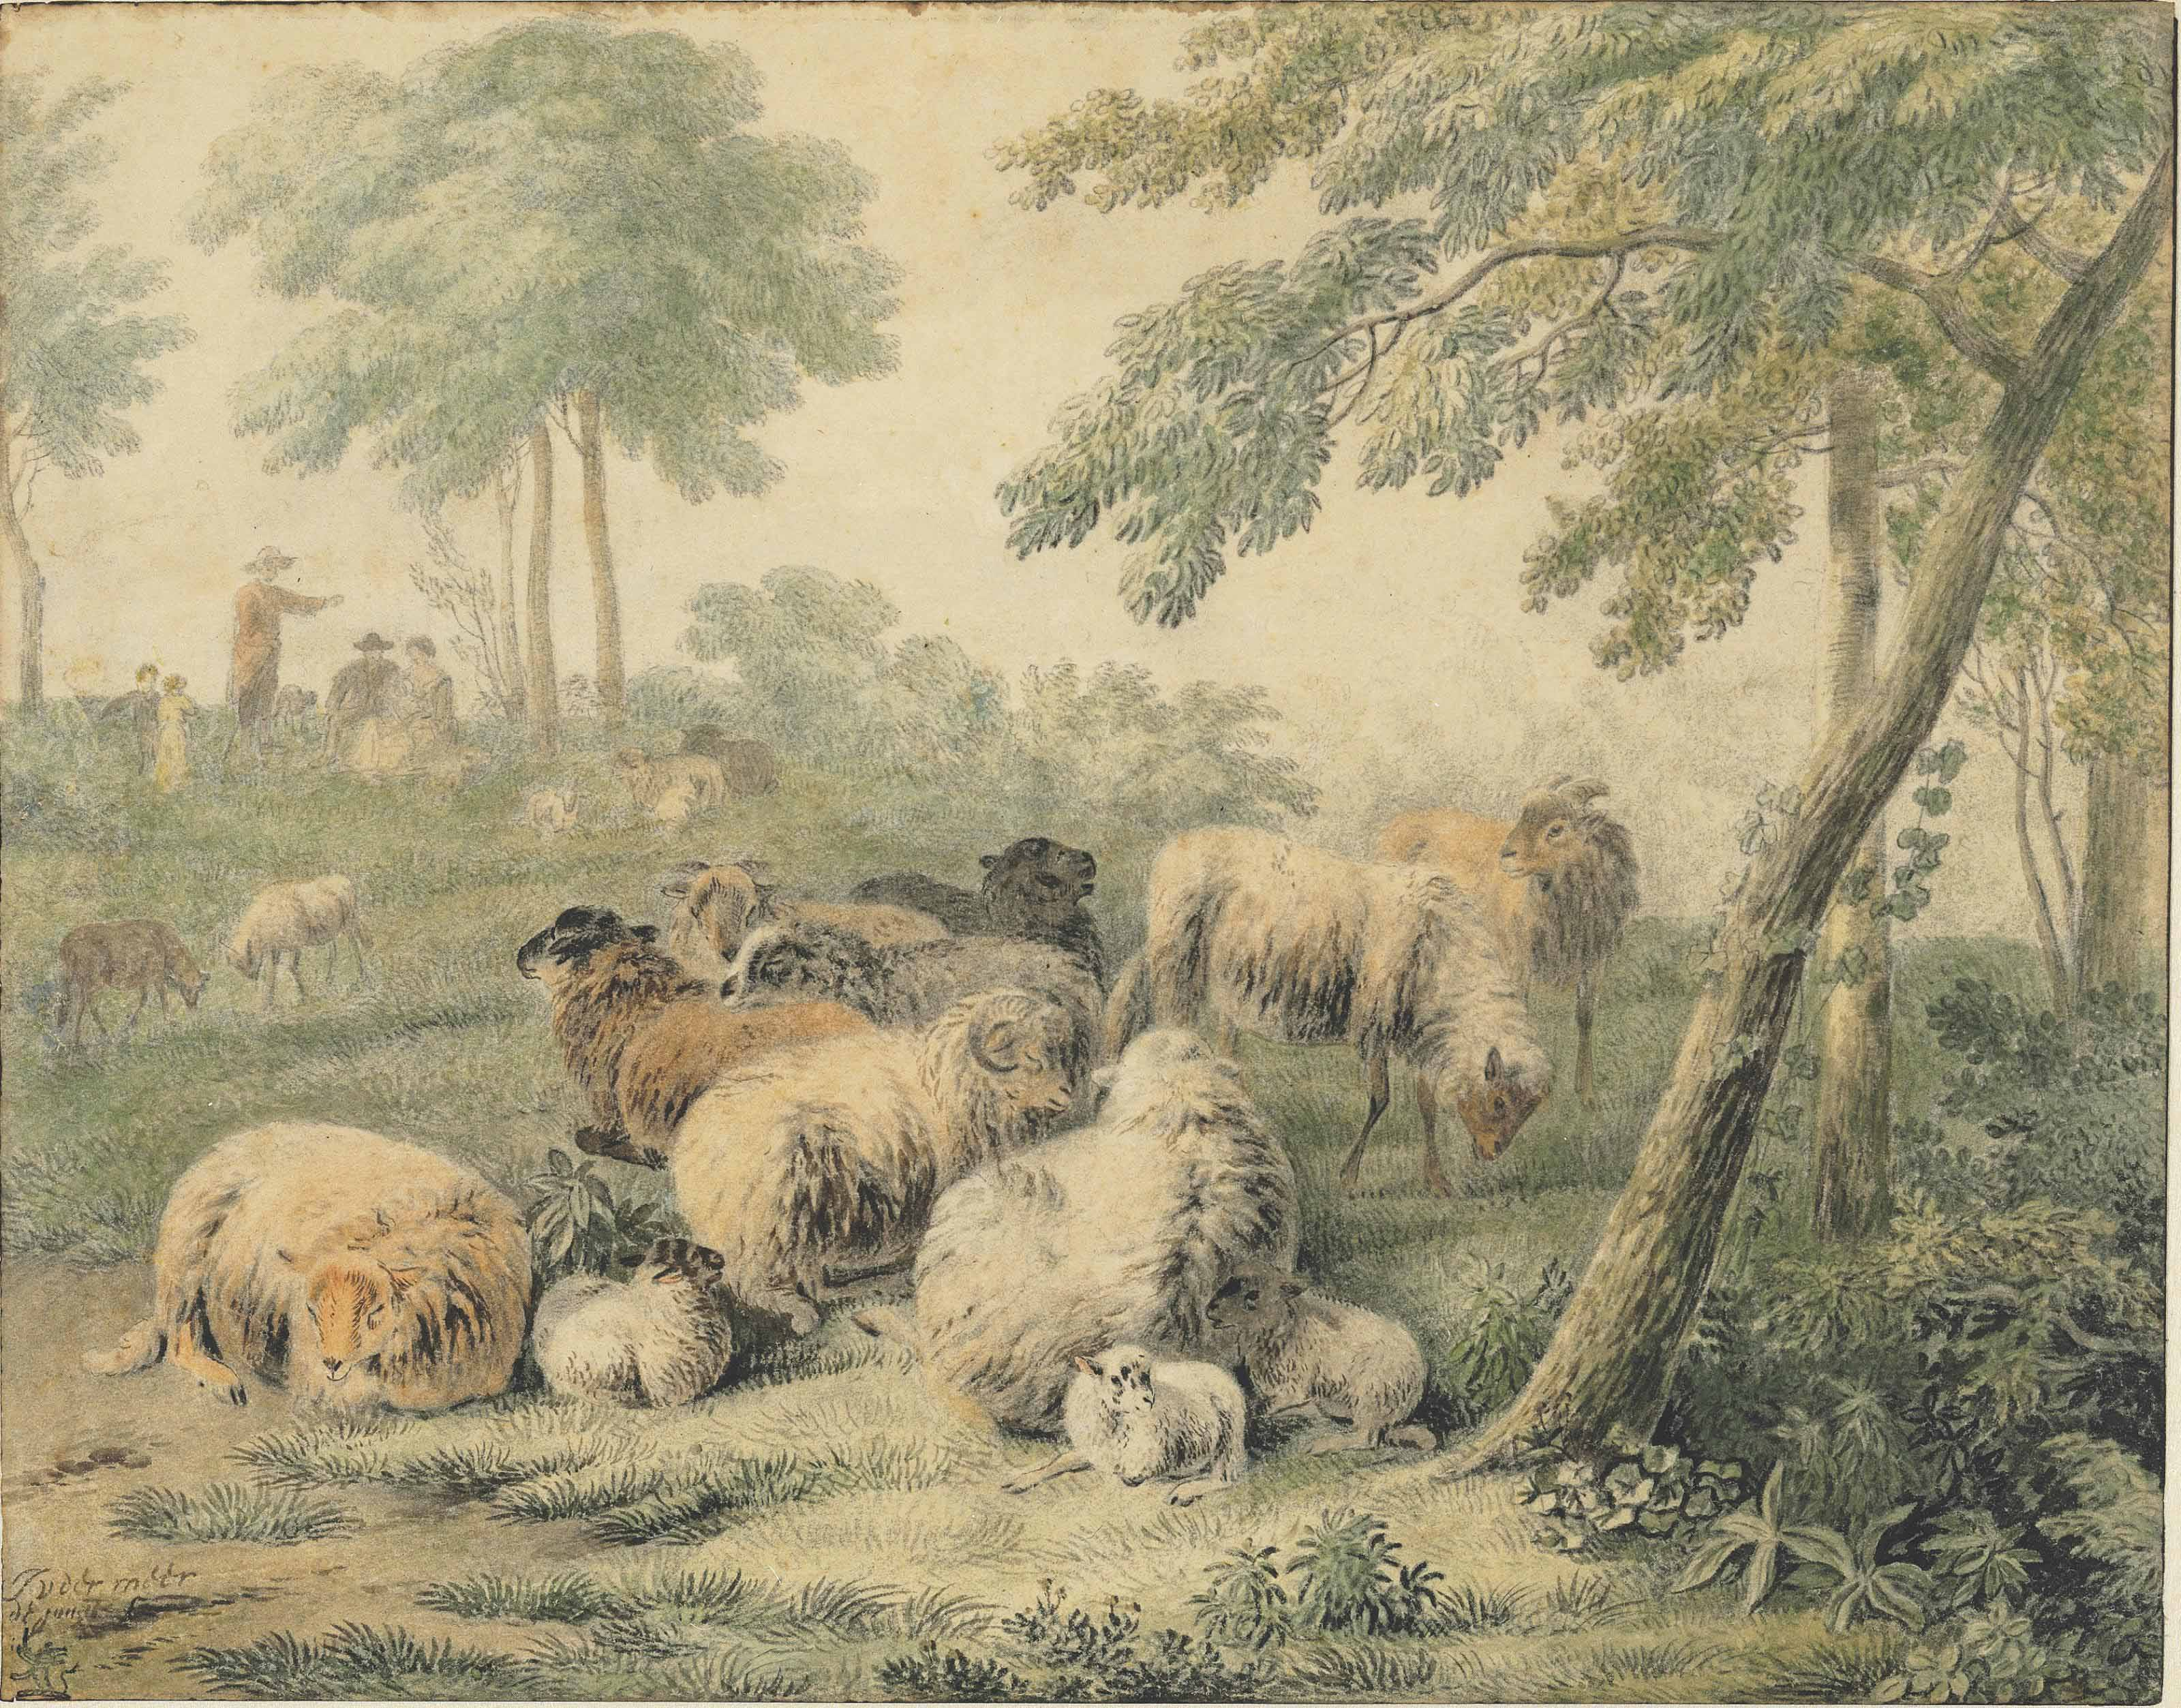 Sheep in a wooded landscape with peasants in the background